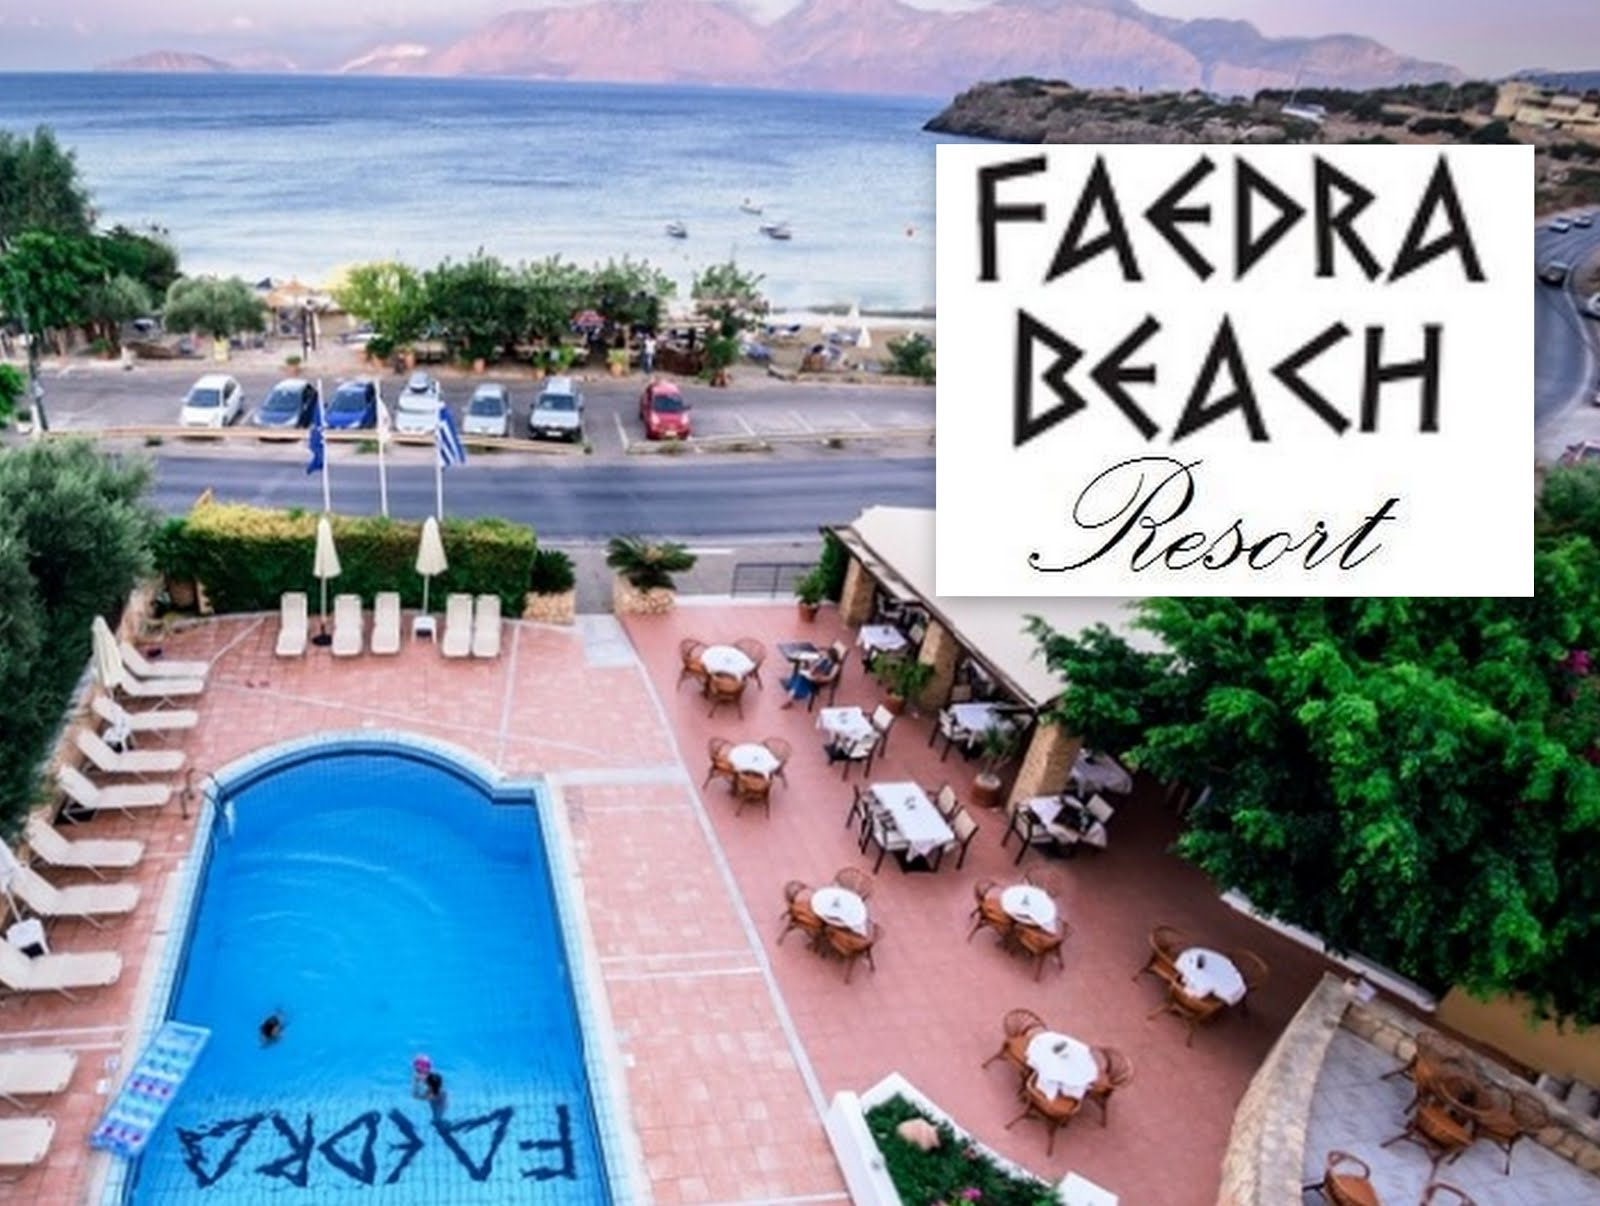 FAEDRA BEACH RESORT